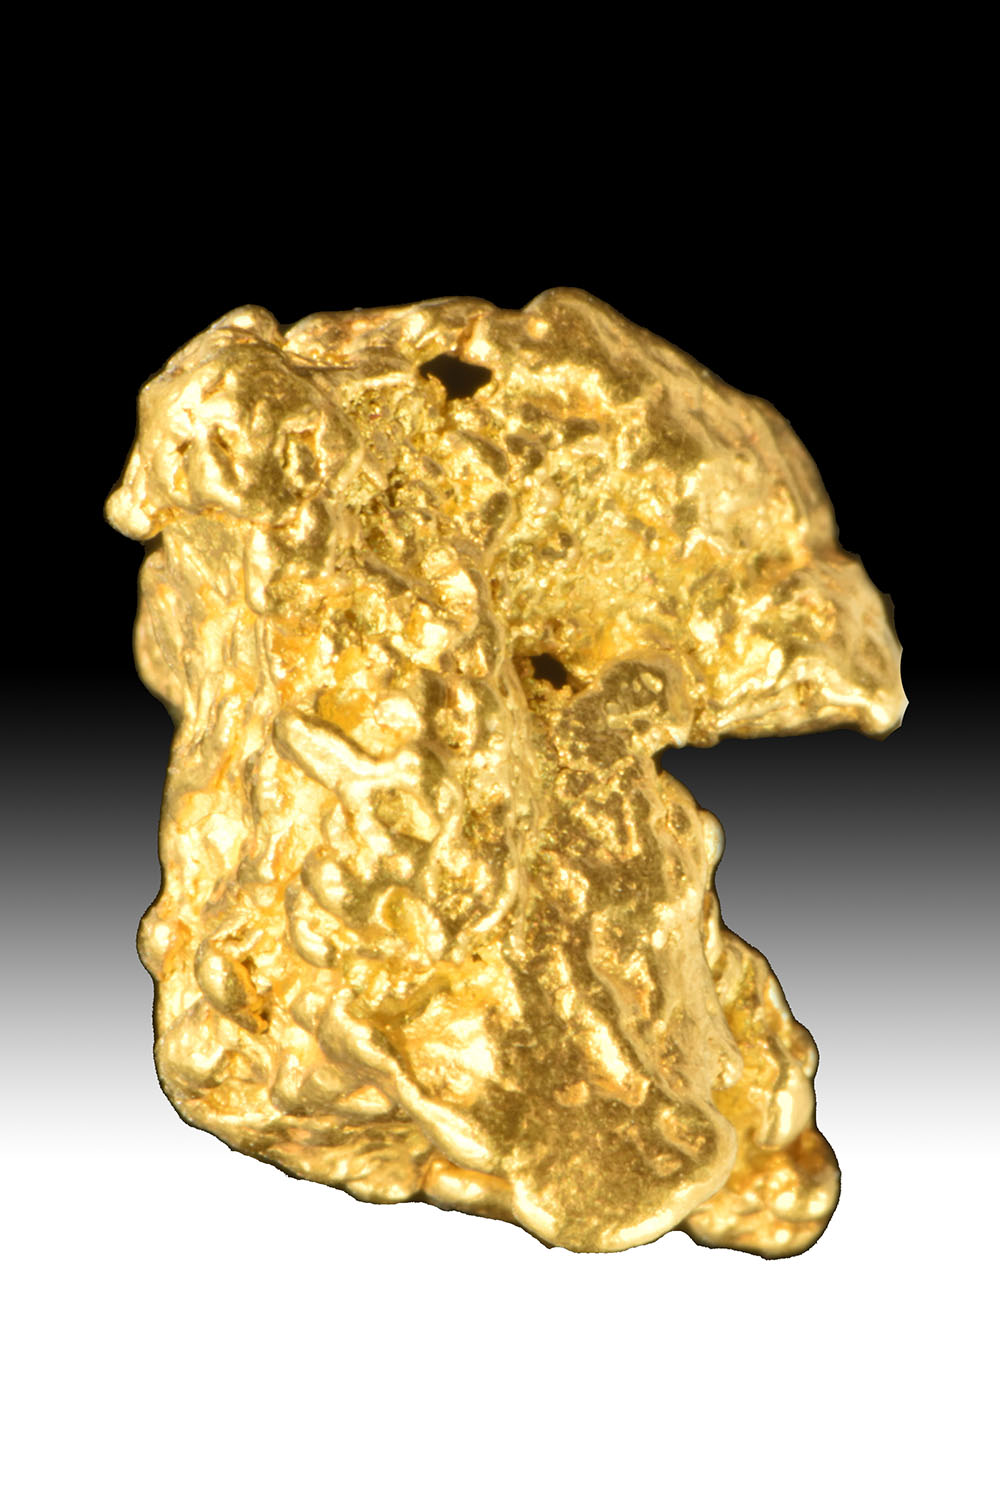 Native Australian Jewelry Grade Gold Nugget